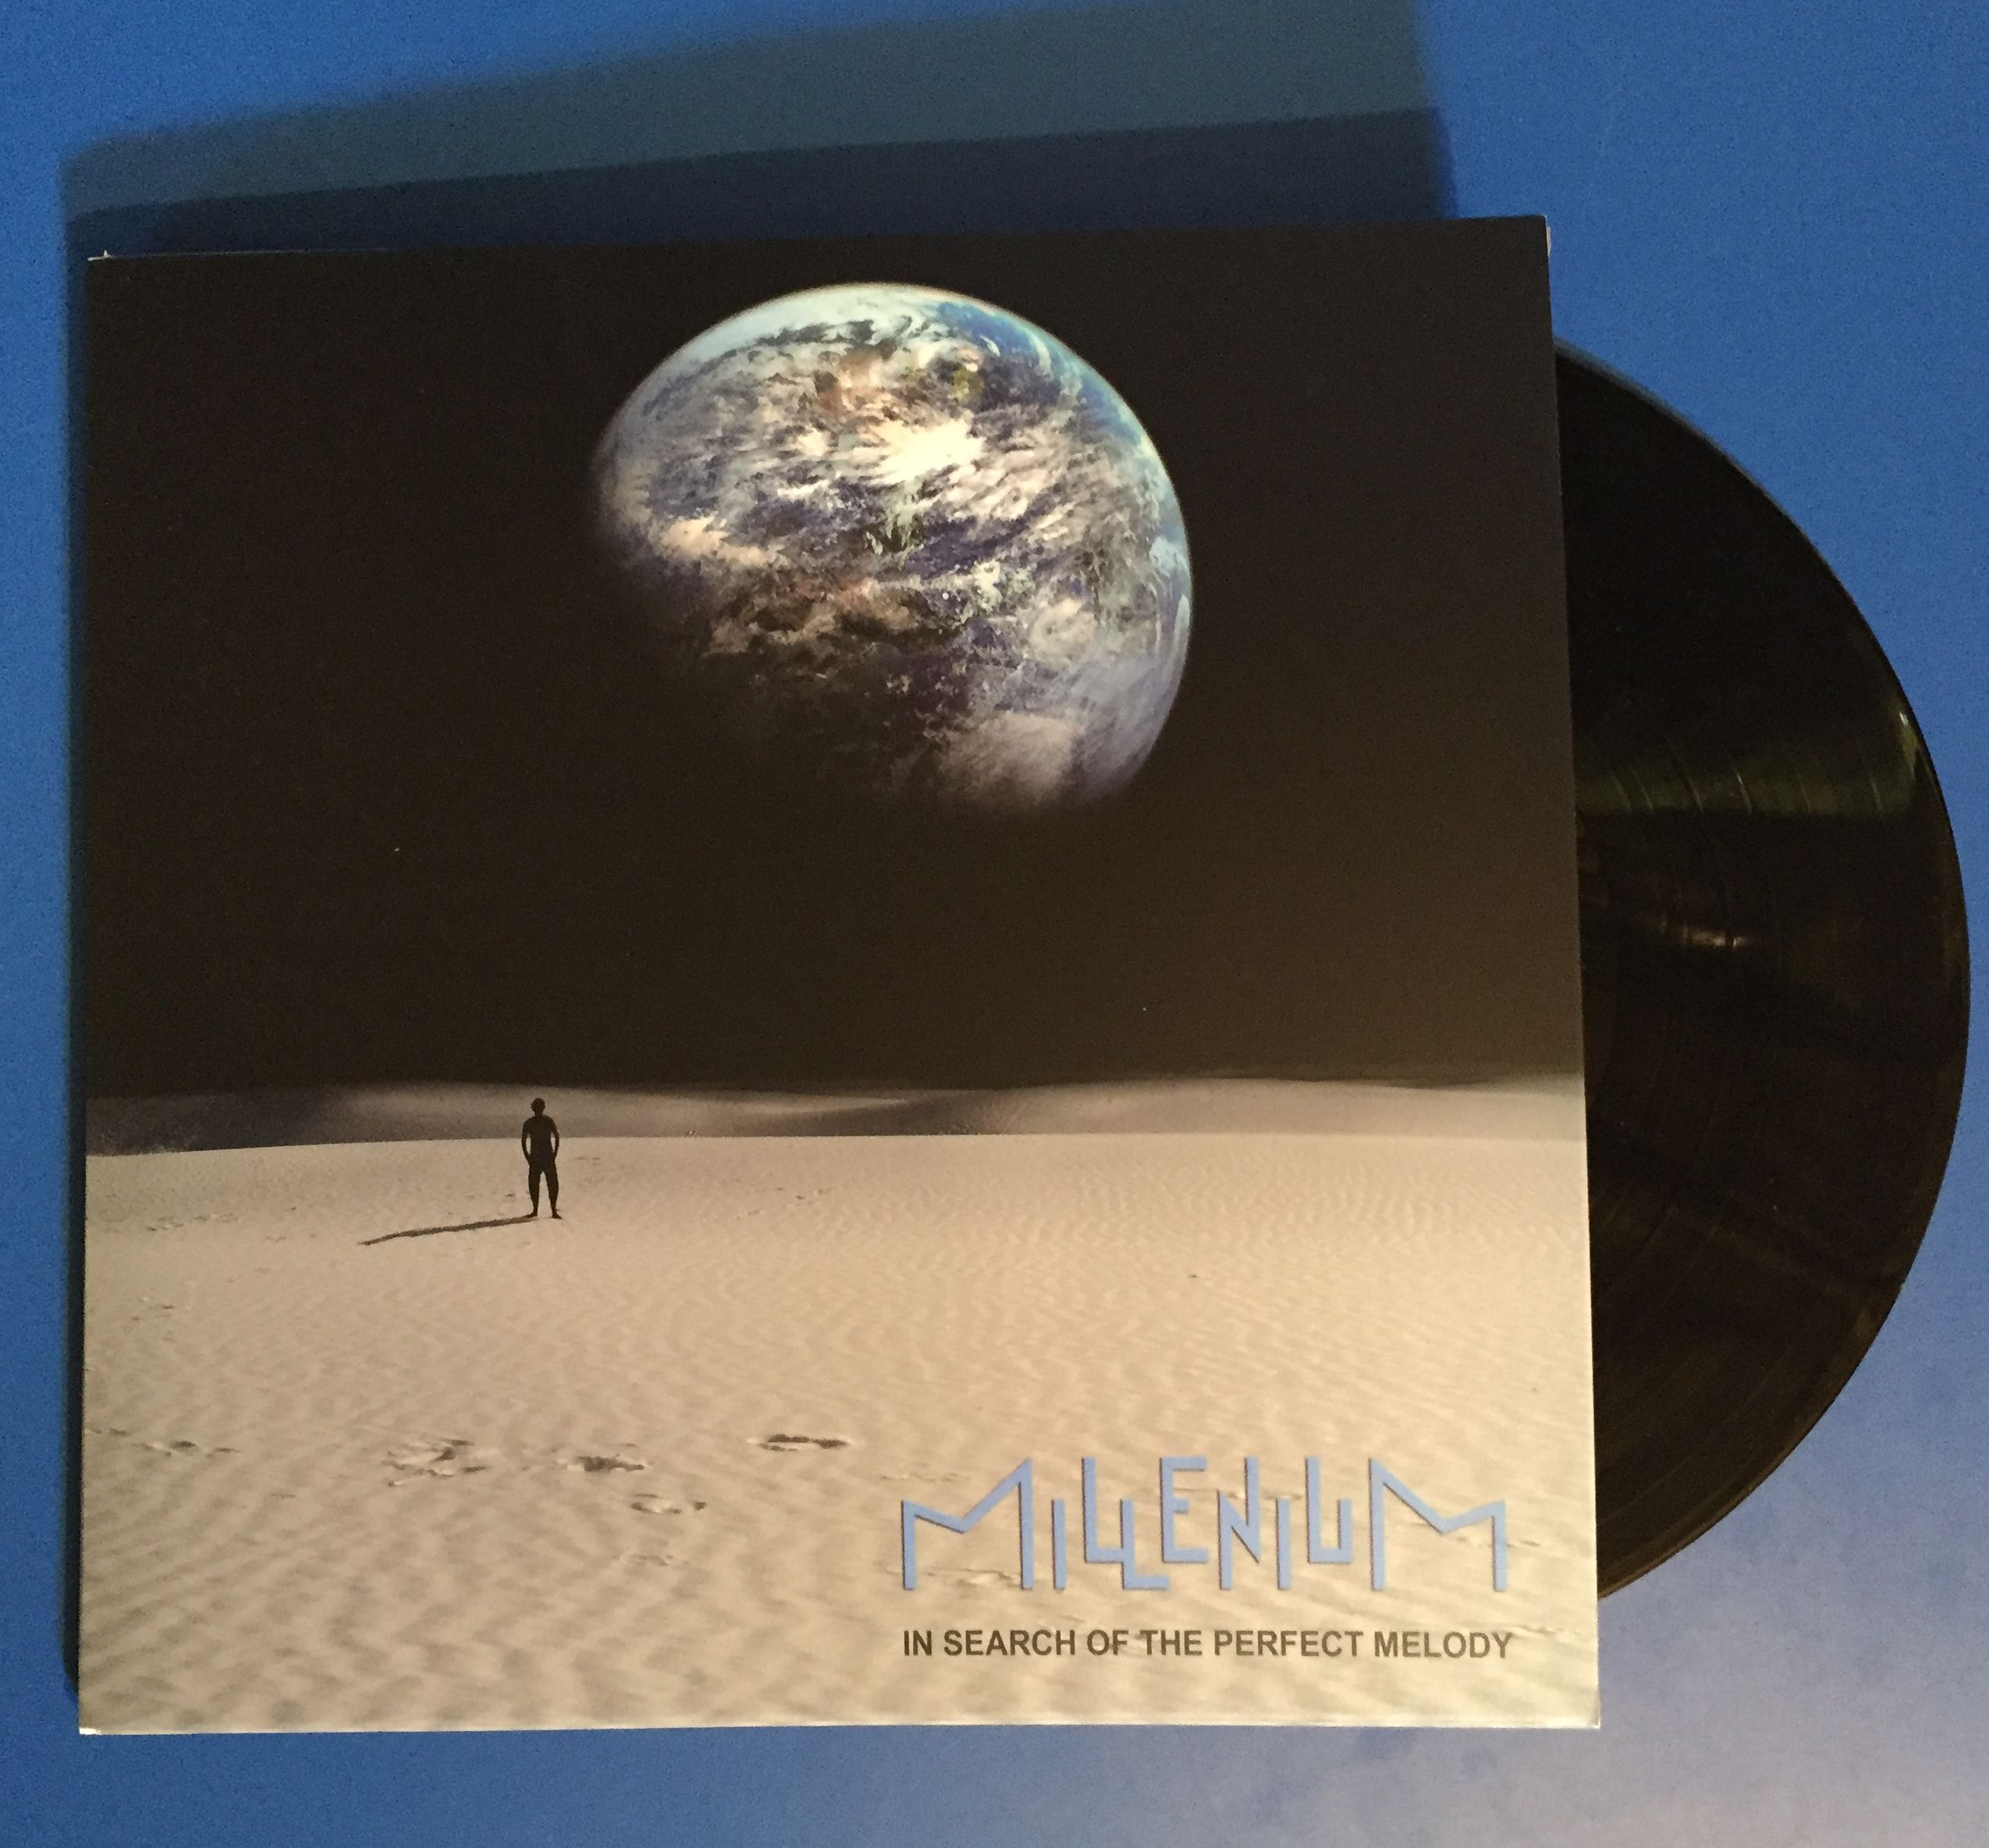 In search of the perfect melody LP vinyl